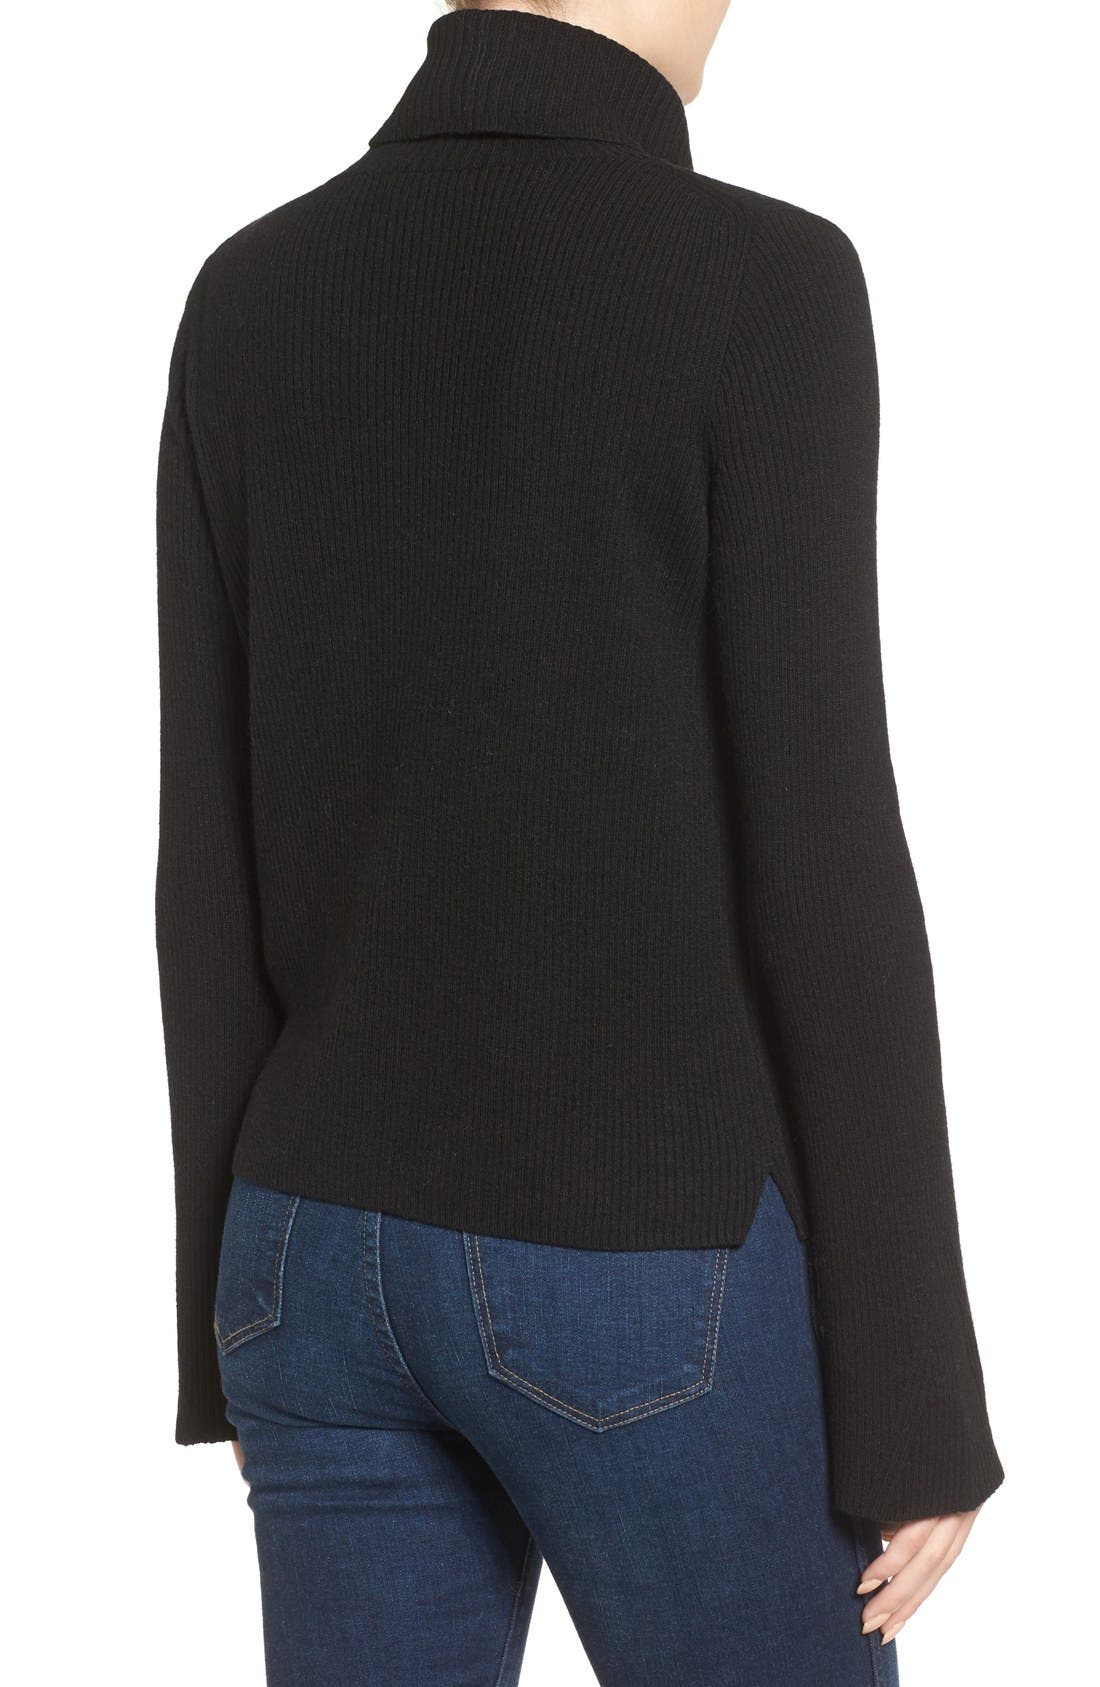 MADEWELL,                             Turtleneck Sweater,                             Alternate thumbnail 5, color,                             001